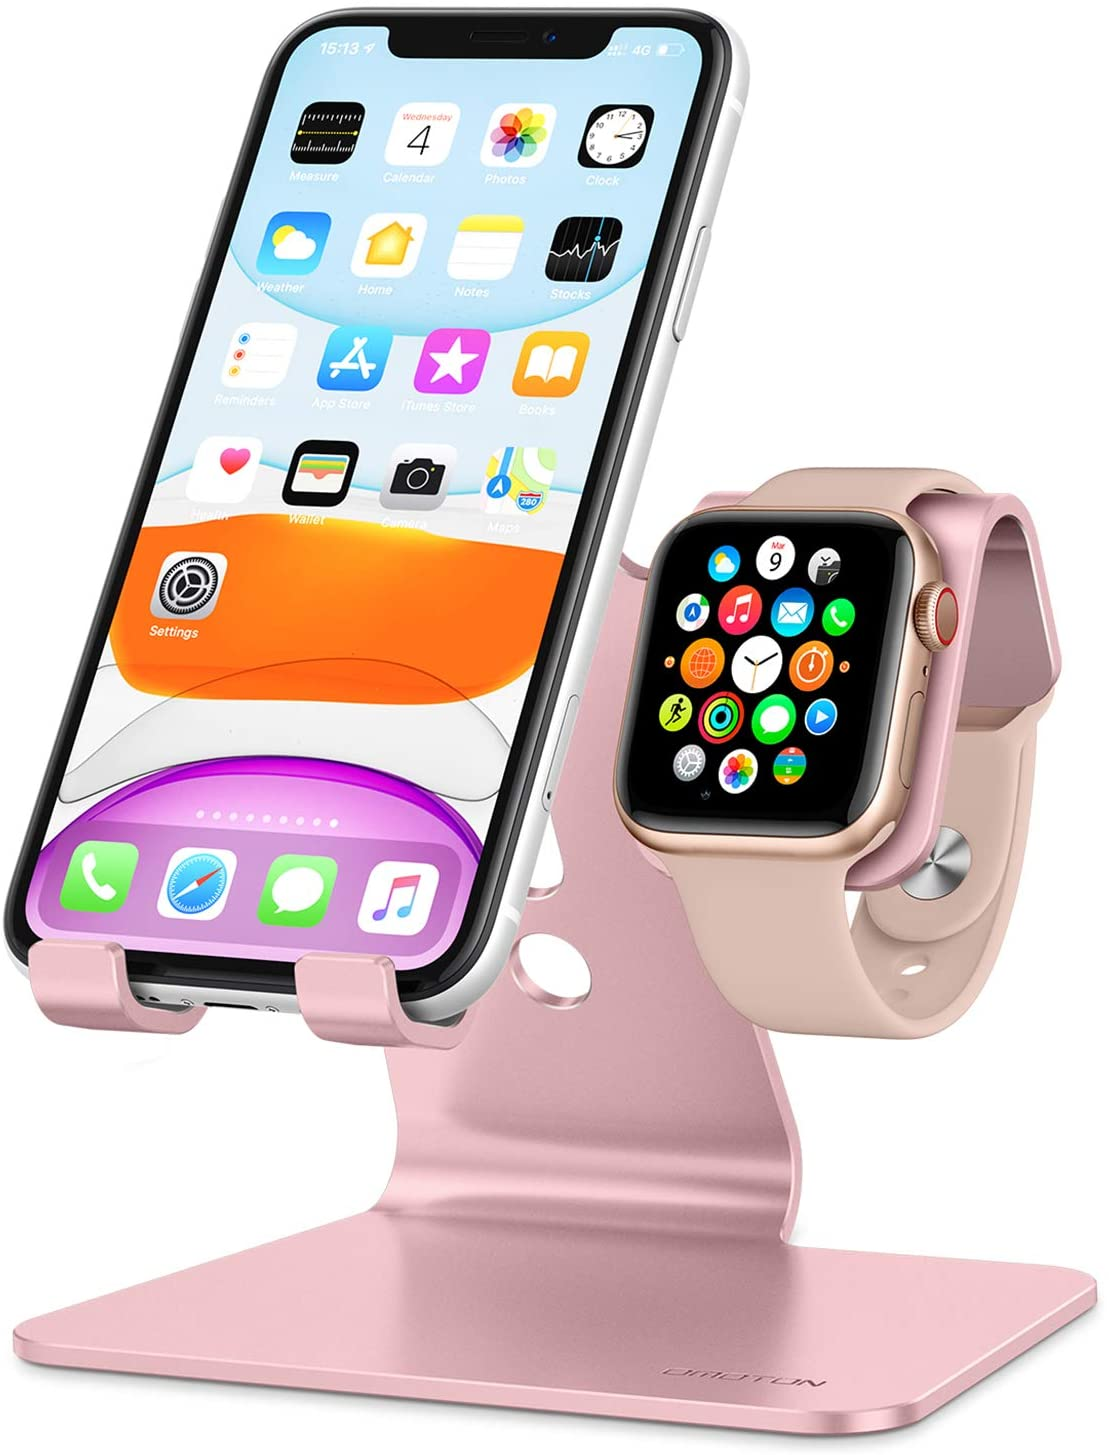 Omoton 2 in 1 Charging Stand for Apple Watch & Phone Rose Gold Colour